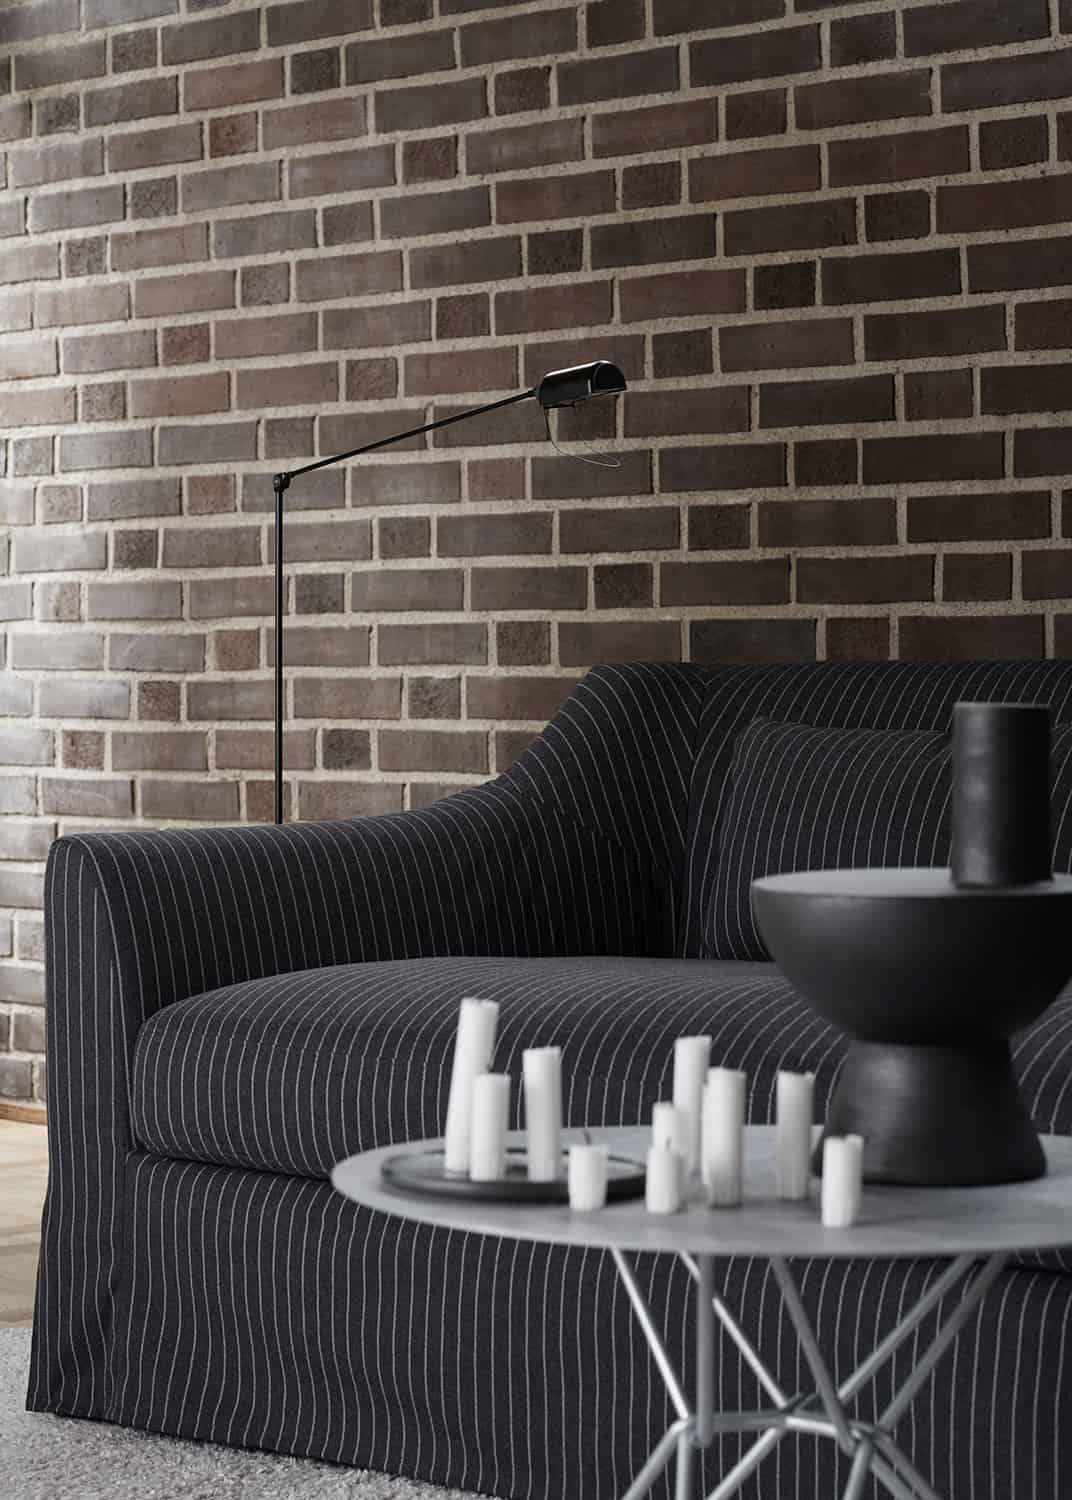 BEMZ IKEA - COLLECTION CONSCIOUS - MATERIAUX RECYCLE